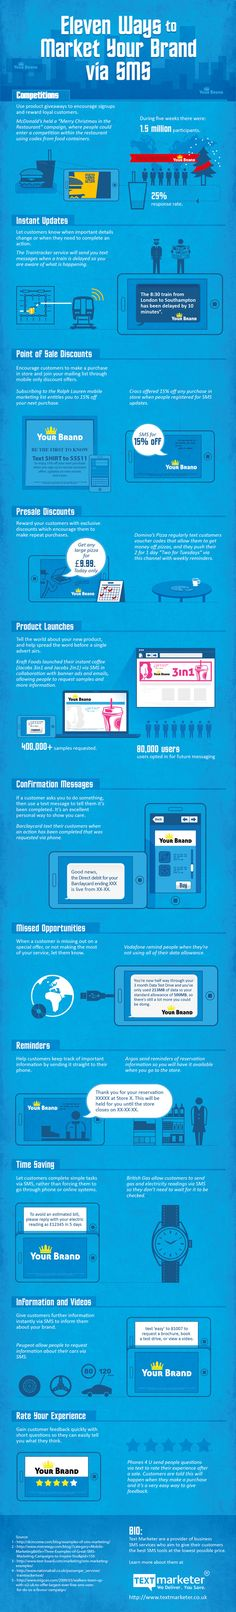 11 Ways to Market Your Brand via SMS #infographic